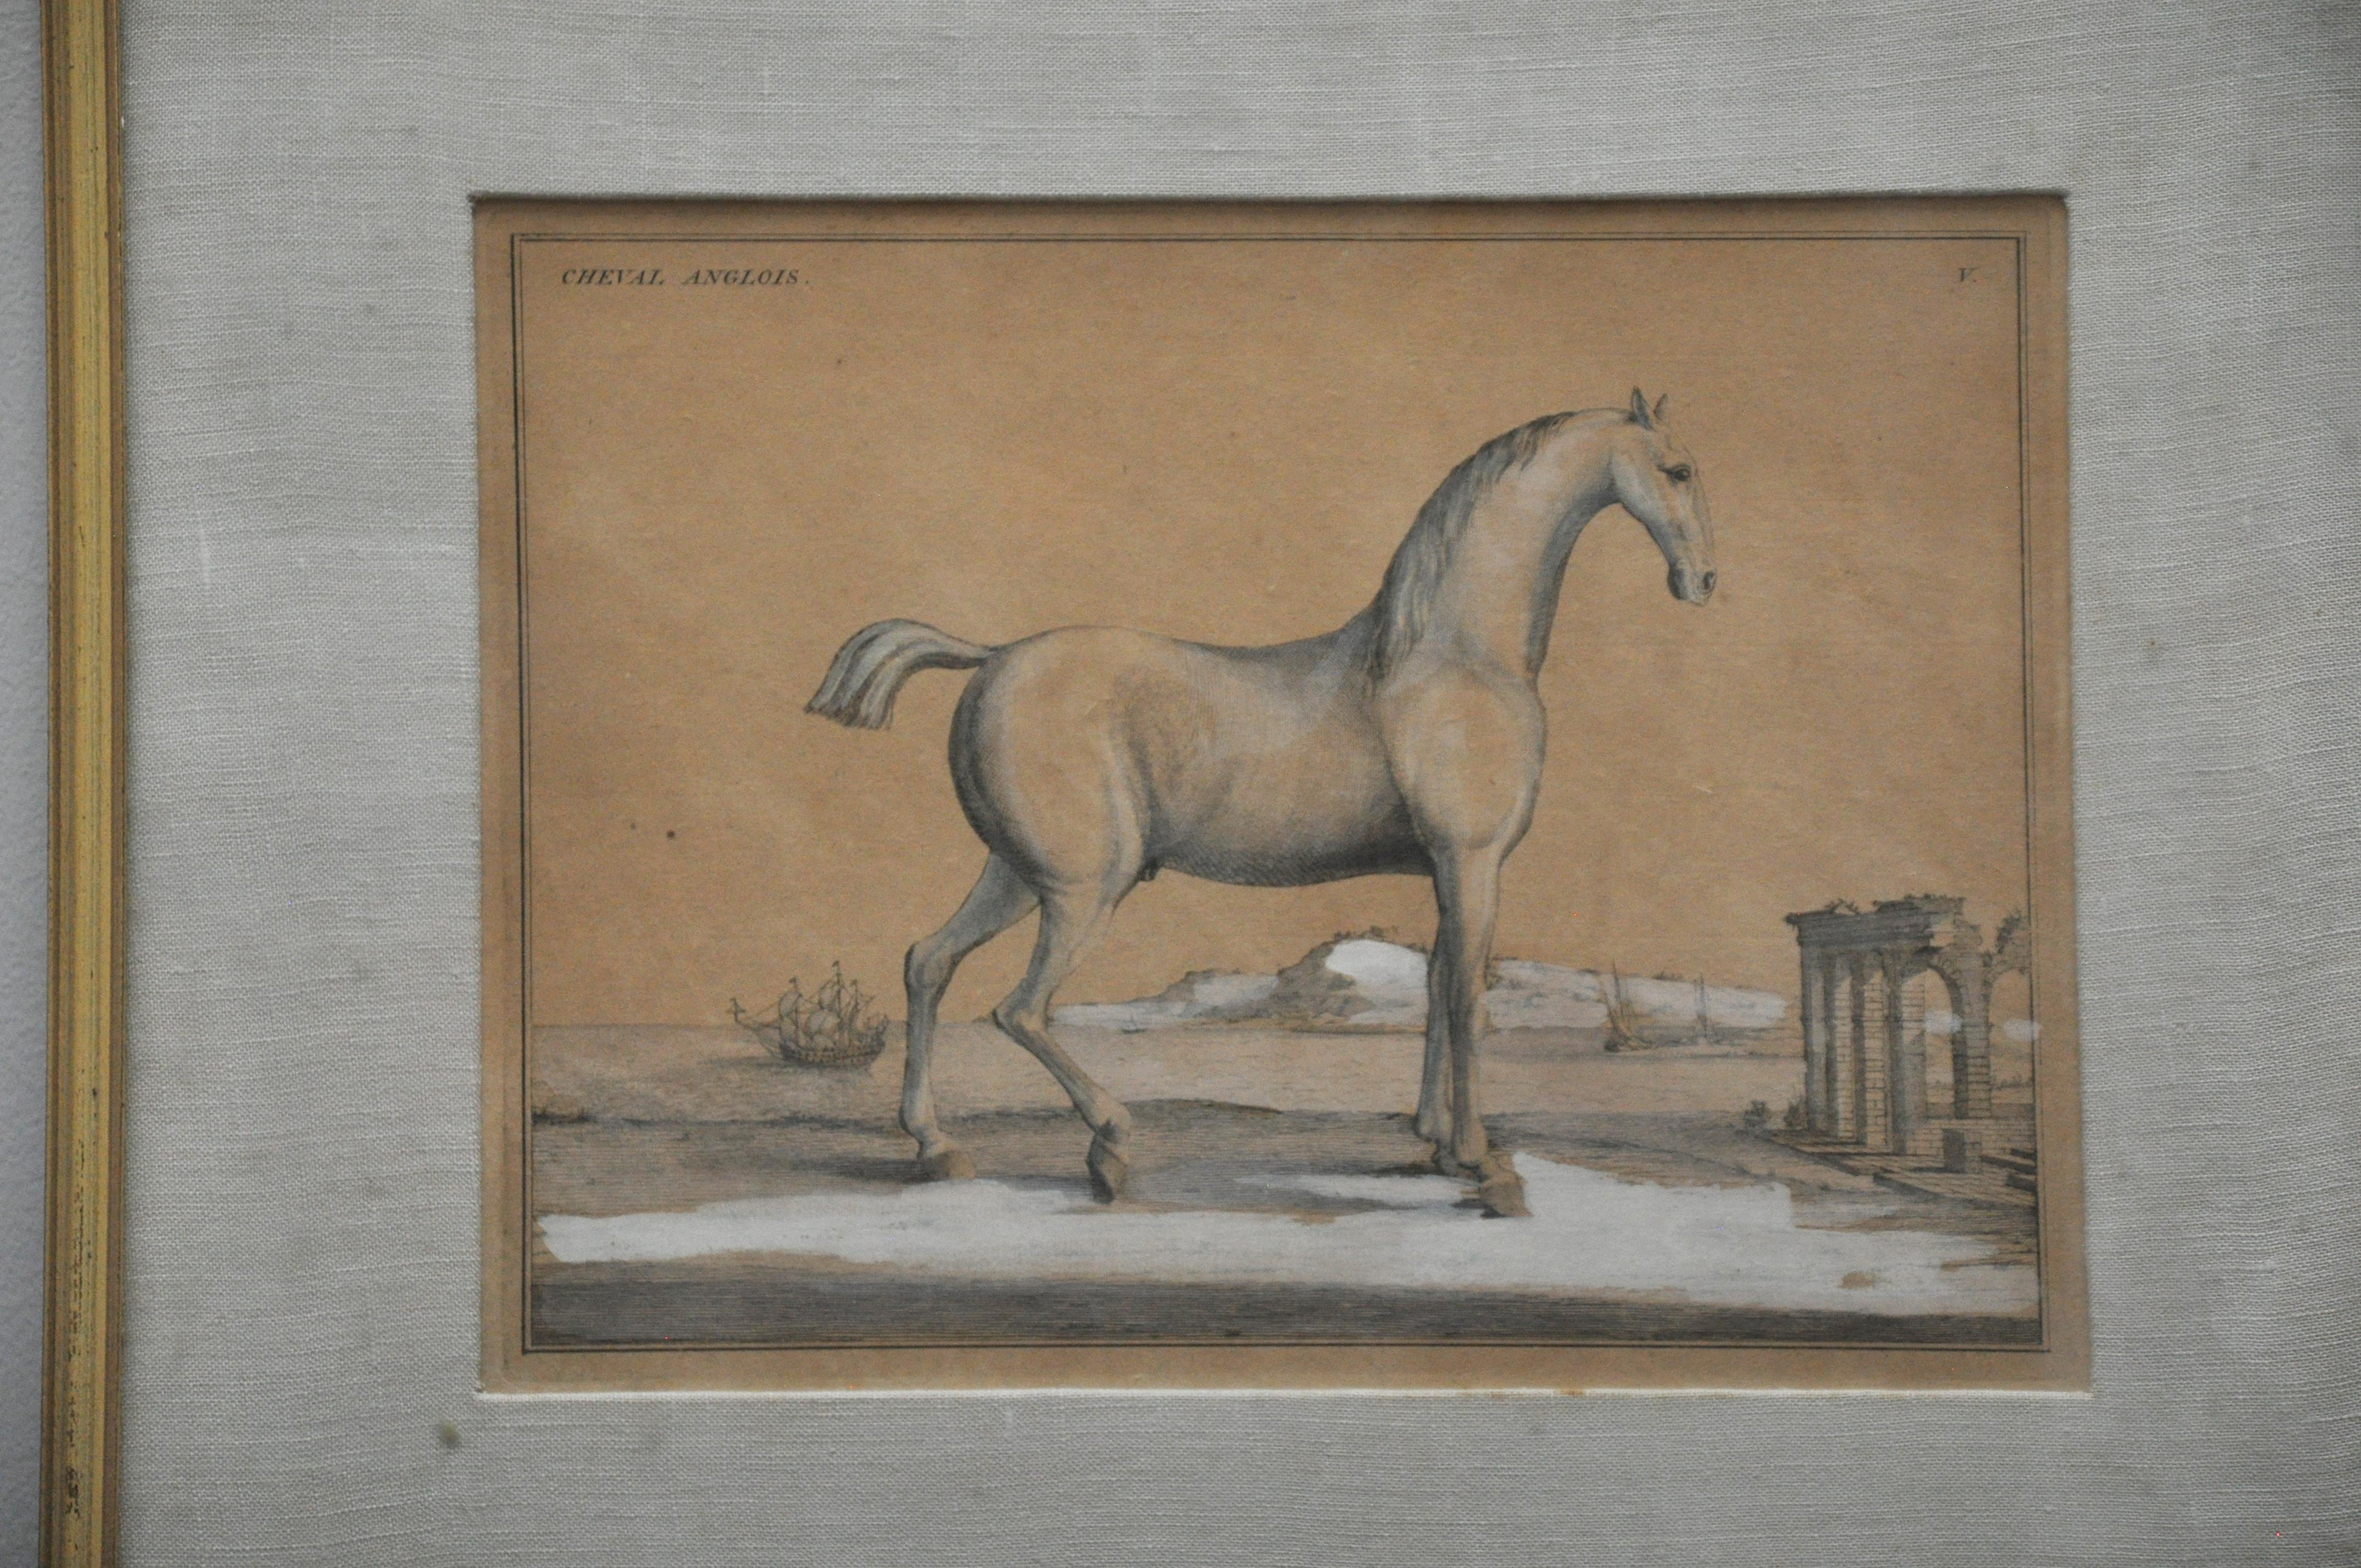 Anglois 18th century etchings of le neopoltain and cheval anglois horses - set of 2